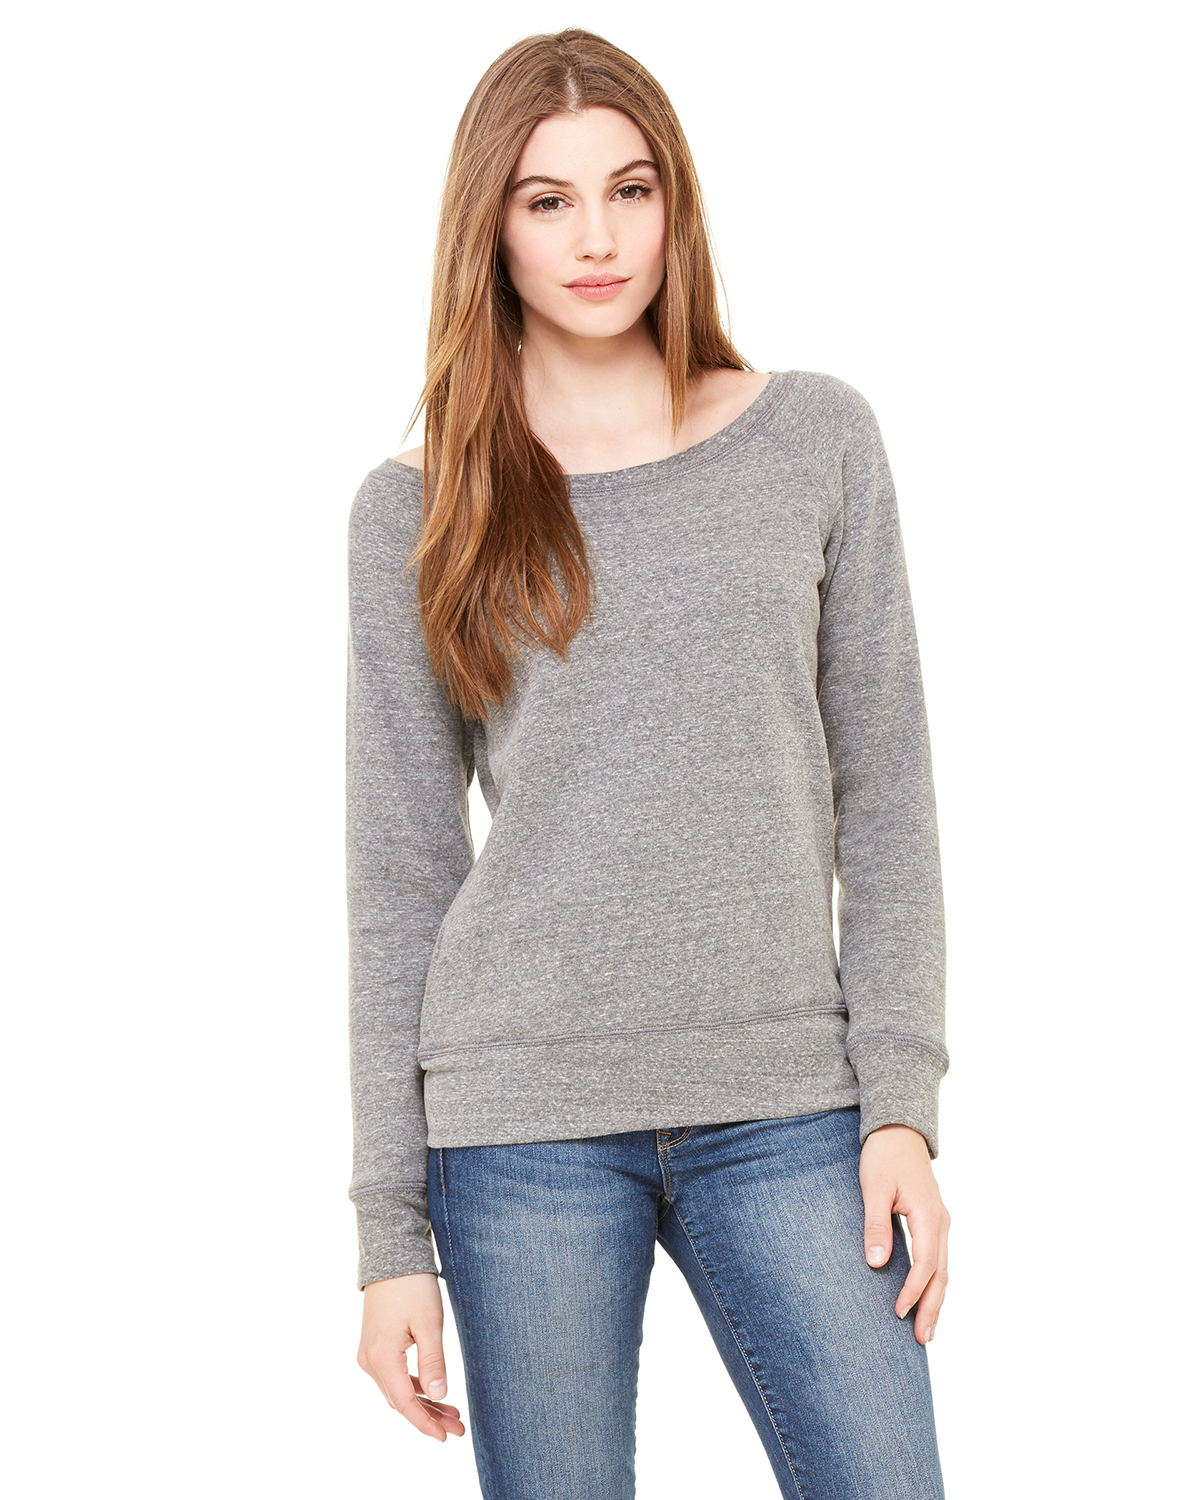 Bella 7501 Ladies 8.2 oz. Triblend Slouchy Wide Neck ...